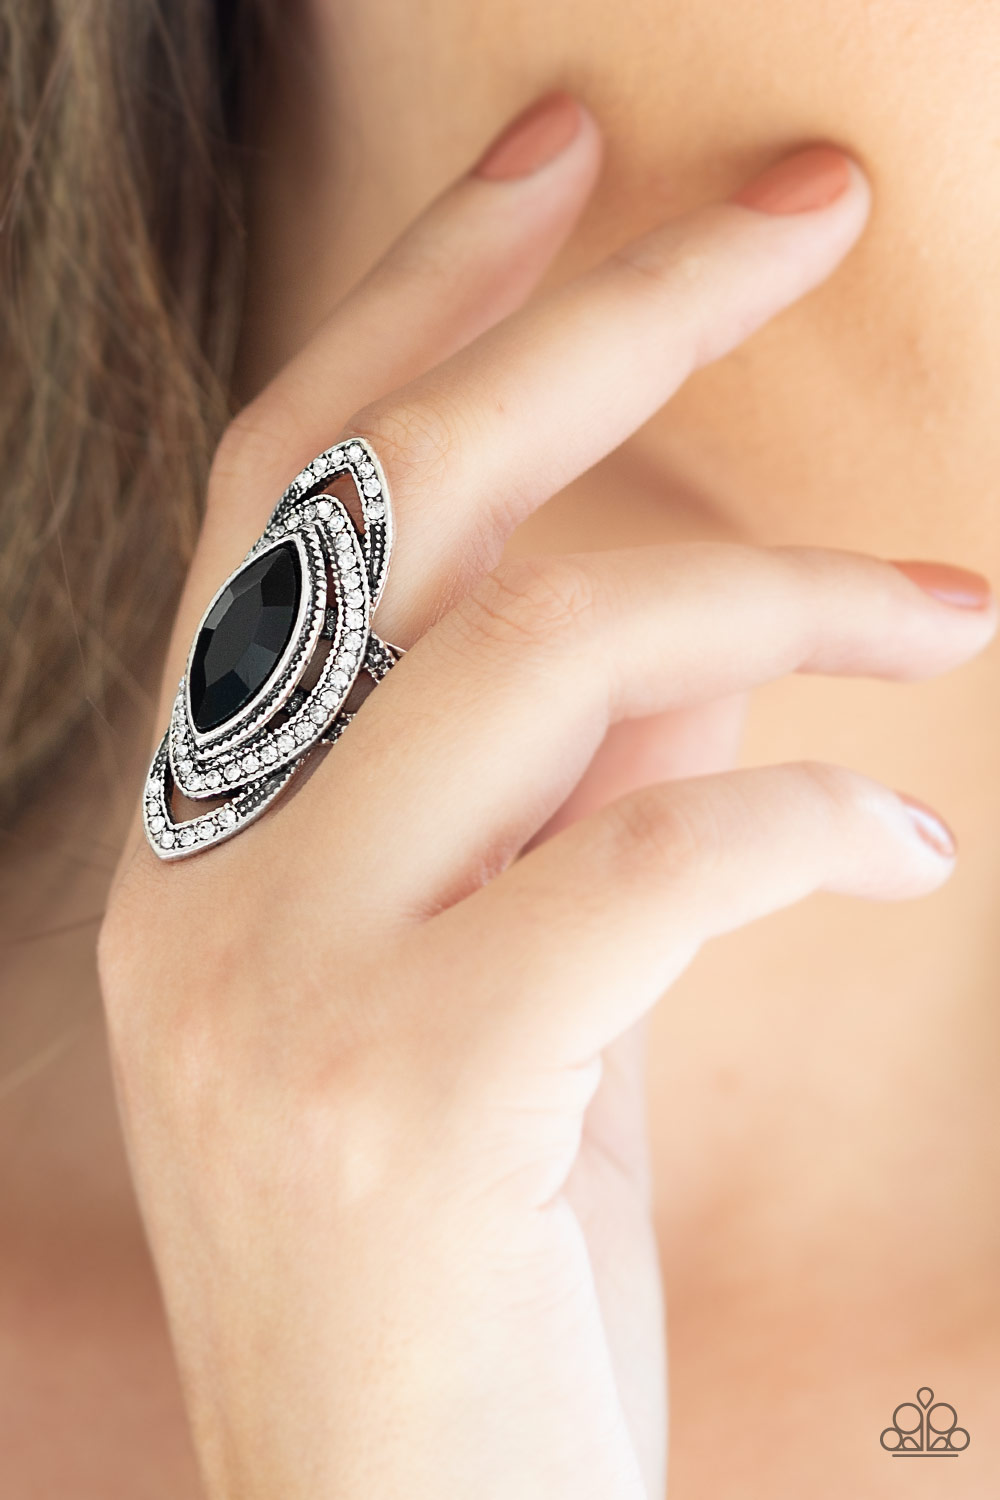 Hot Off the EMPRESS - Black and Silver Ring with Rhinestones by Paparazzi $5.00 my-bling.com